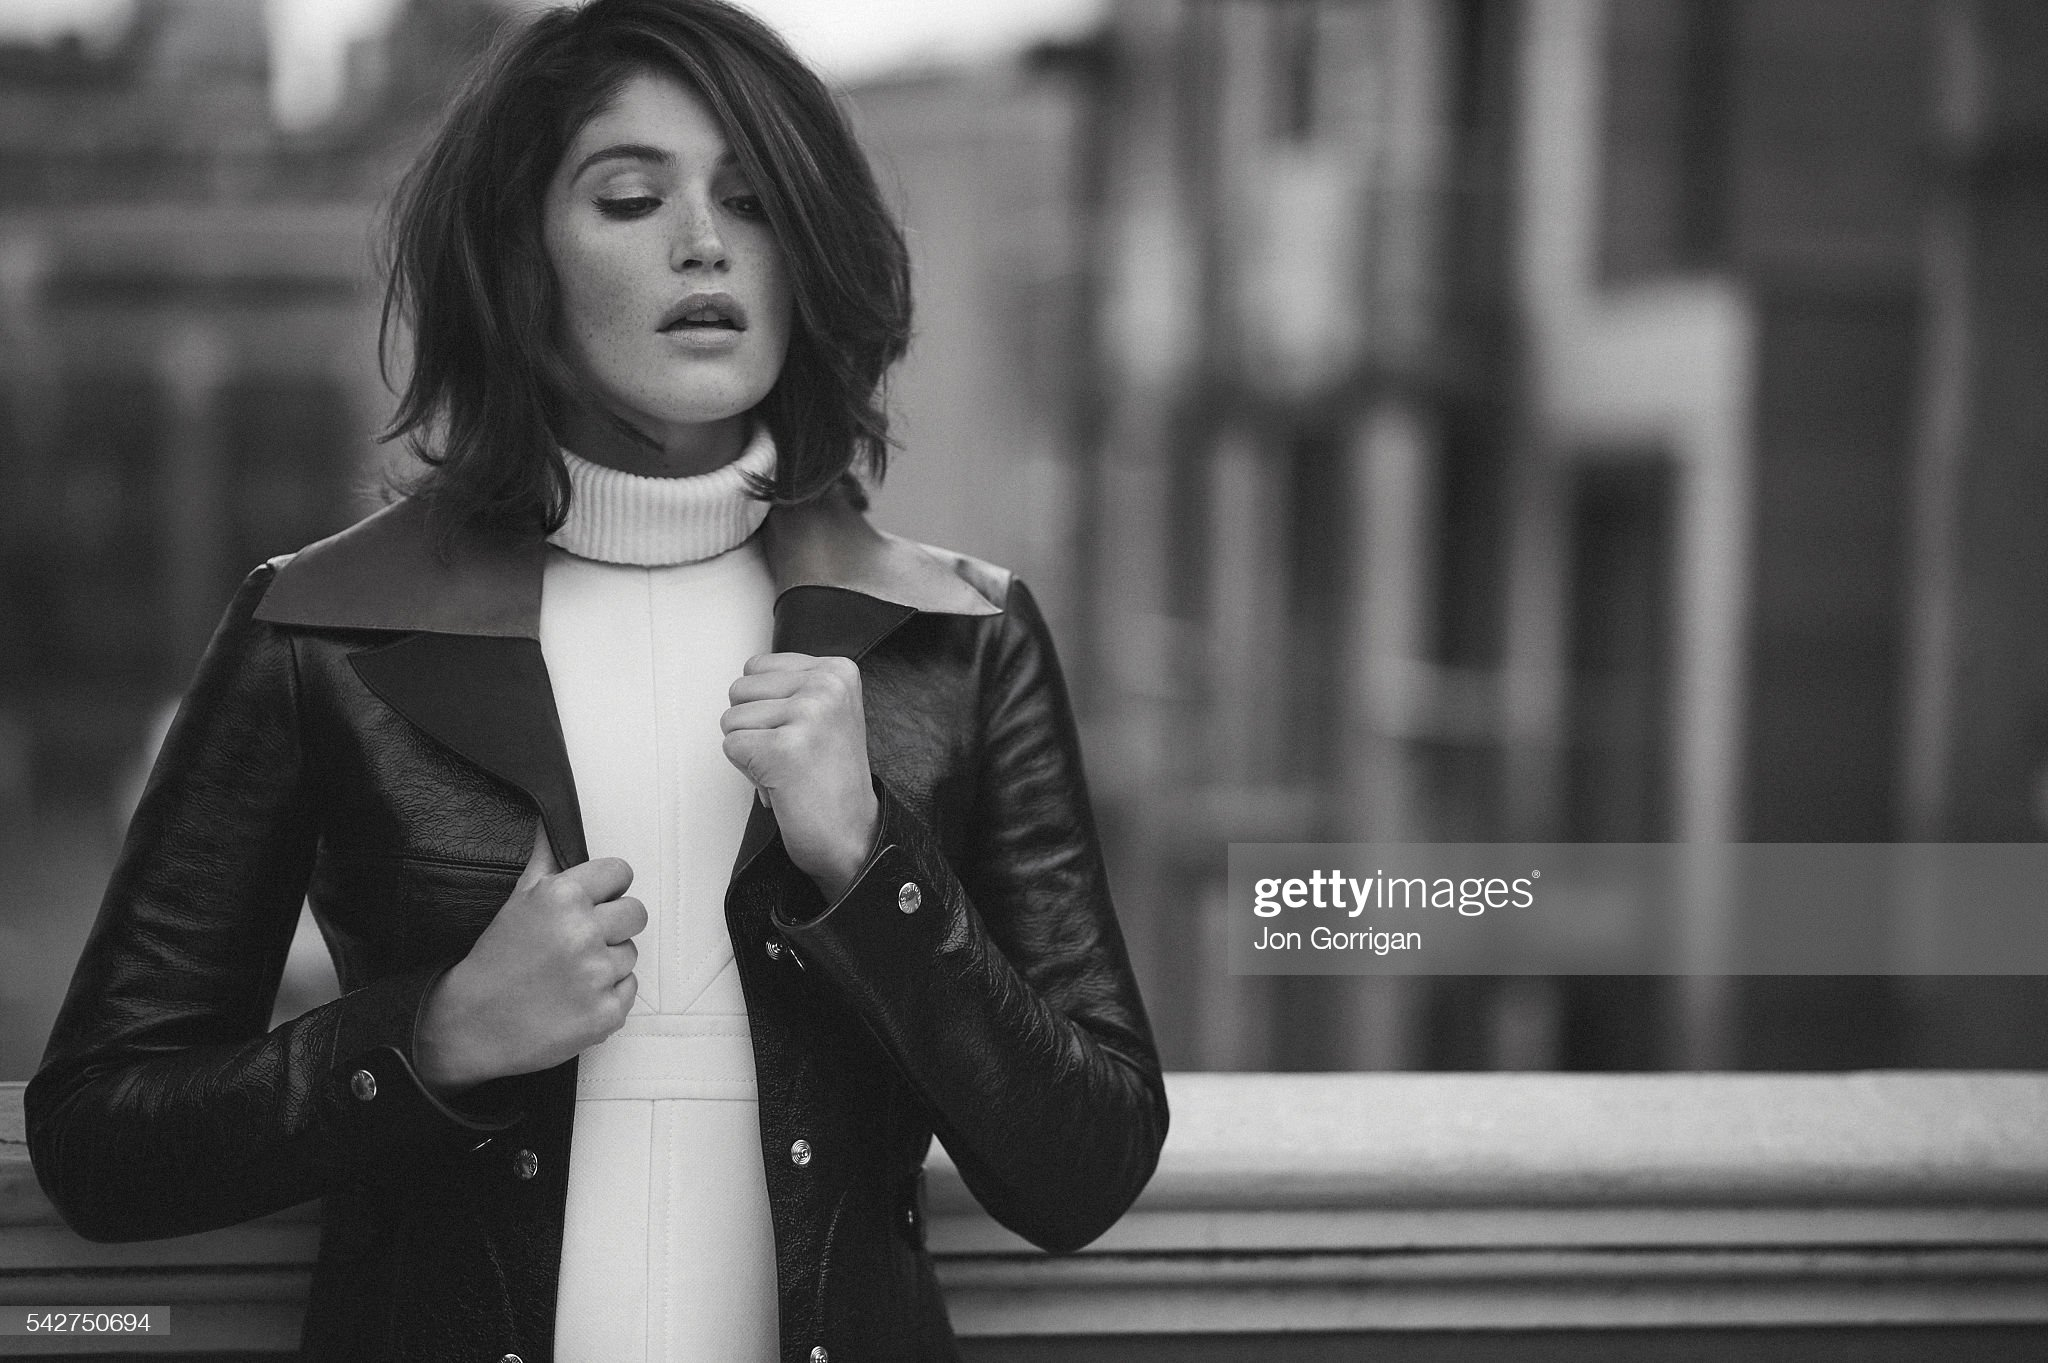 actor-gemma-arterton-is-photographed-for-es-magazine-on-september-29-picture-id542750694